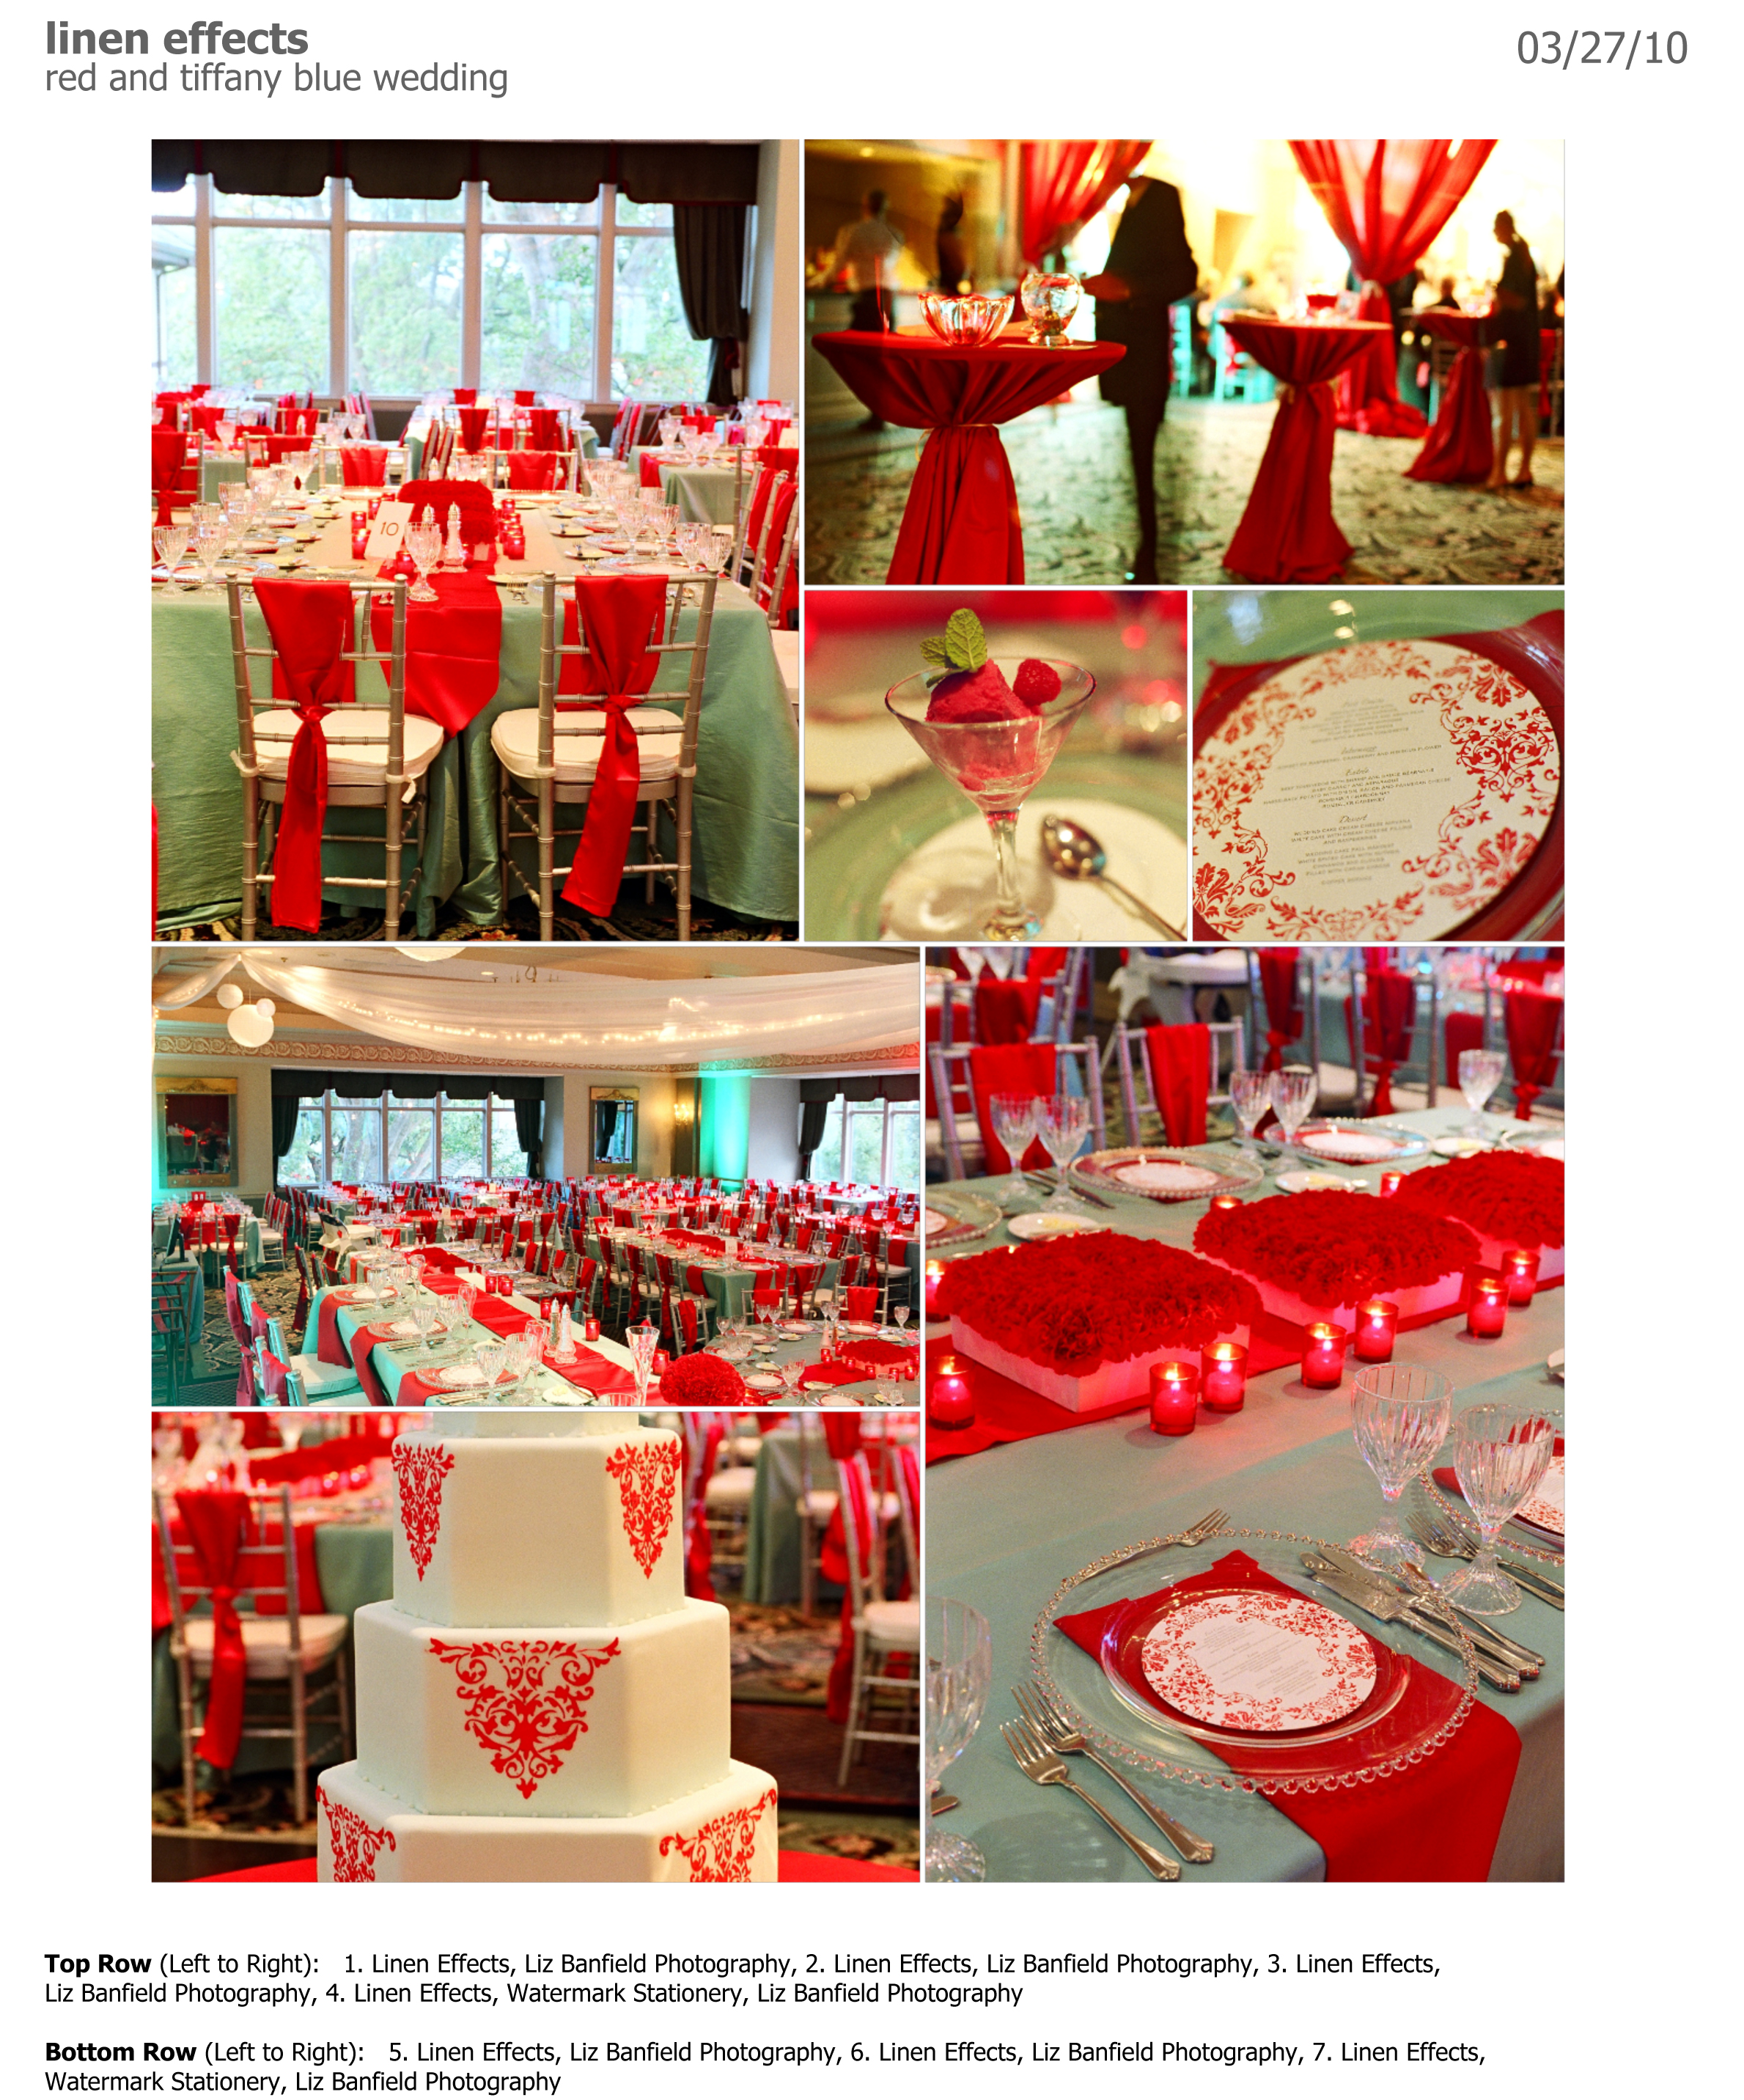 Red And Tiffany Blue Wedding Ideas: Red And Tiffany Blue Wedding Theme